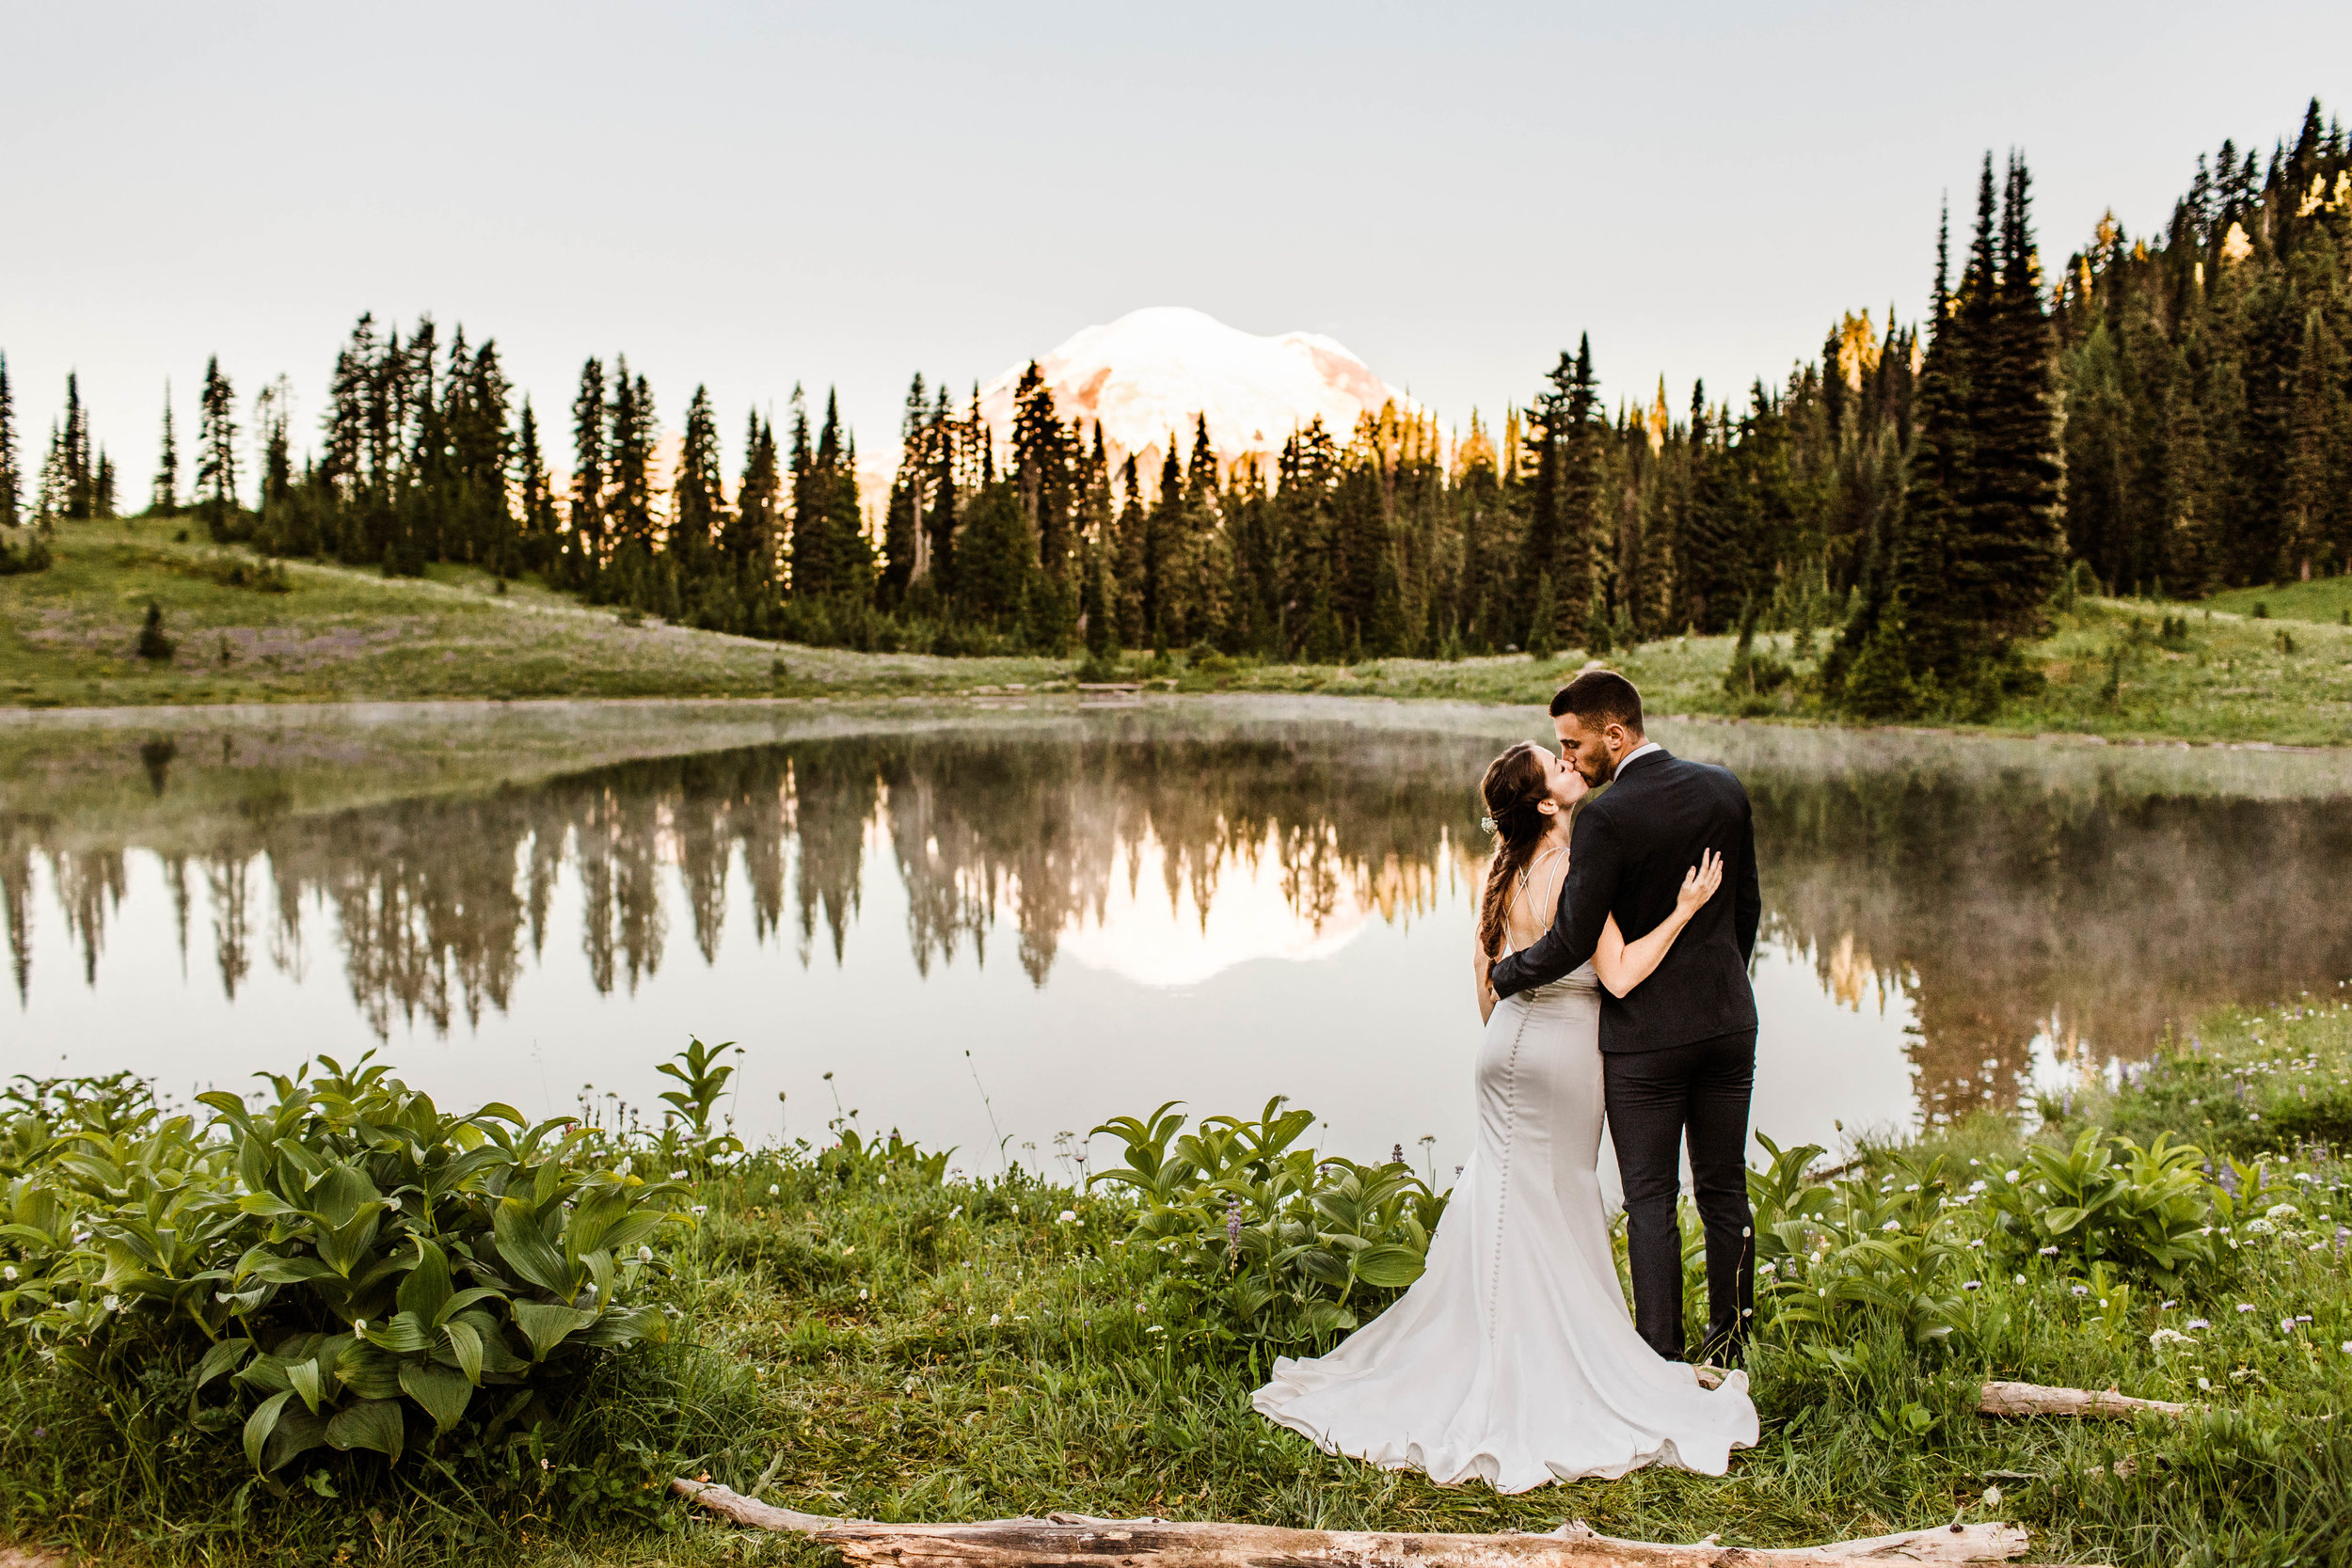 Couple eloping by a lake in Mount Rainier National Park in Washington state | Seattle elopement photographers